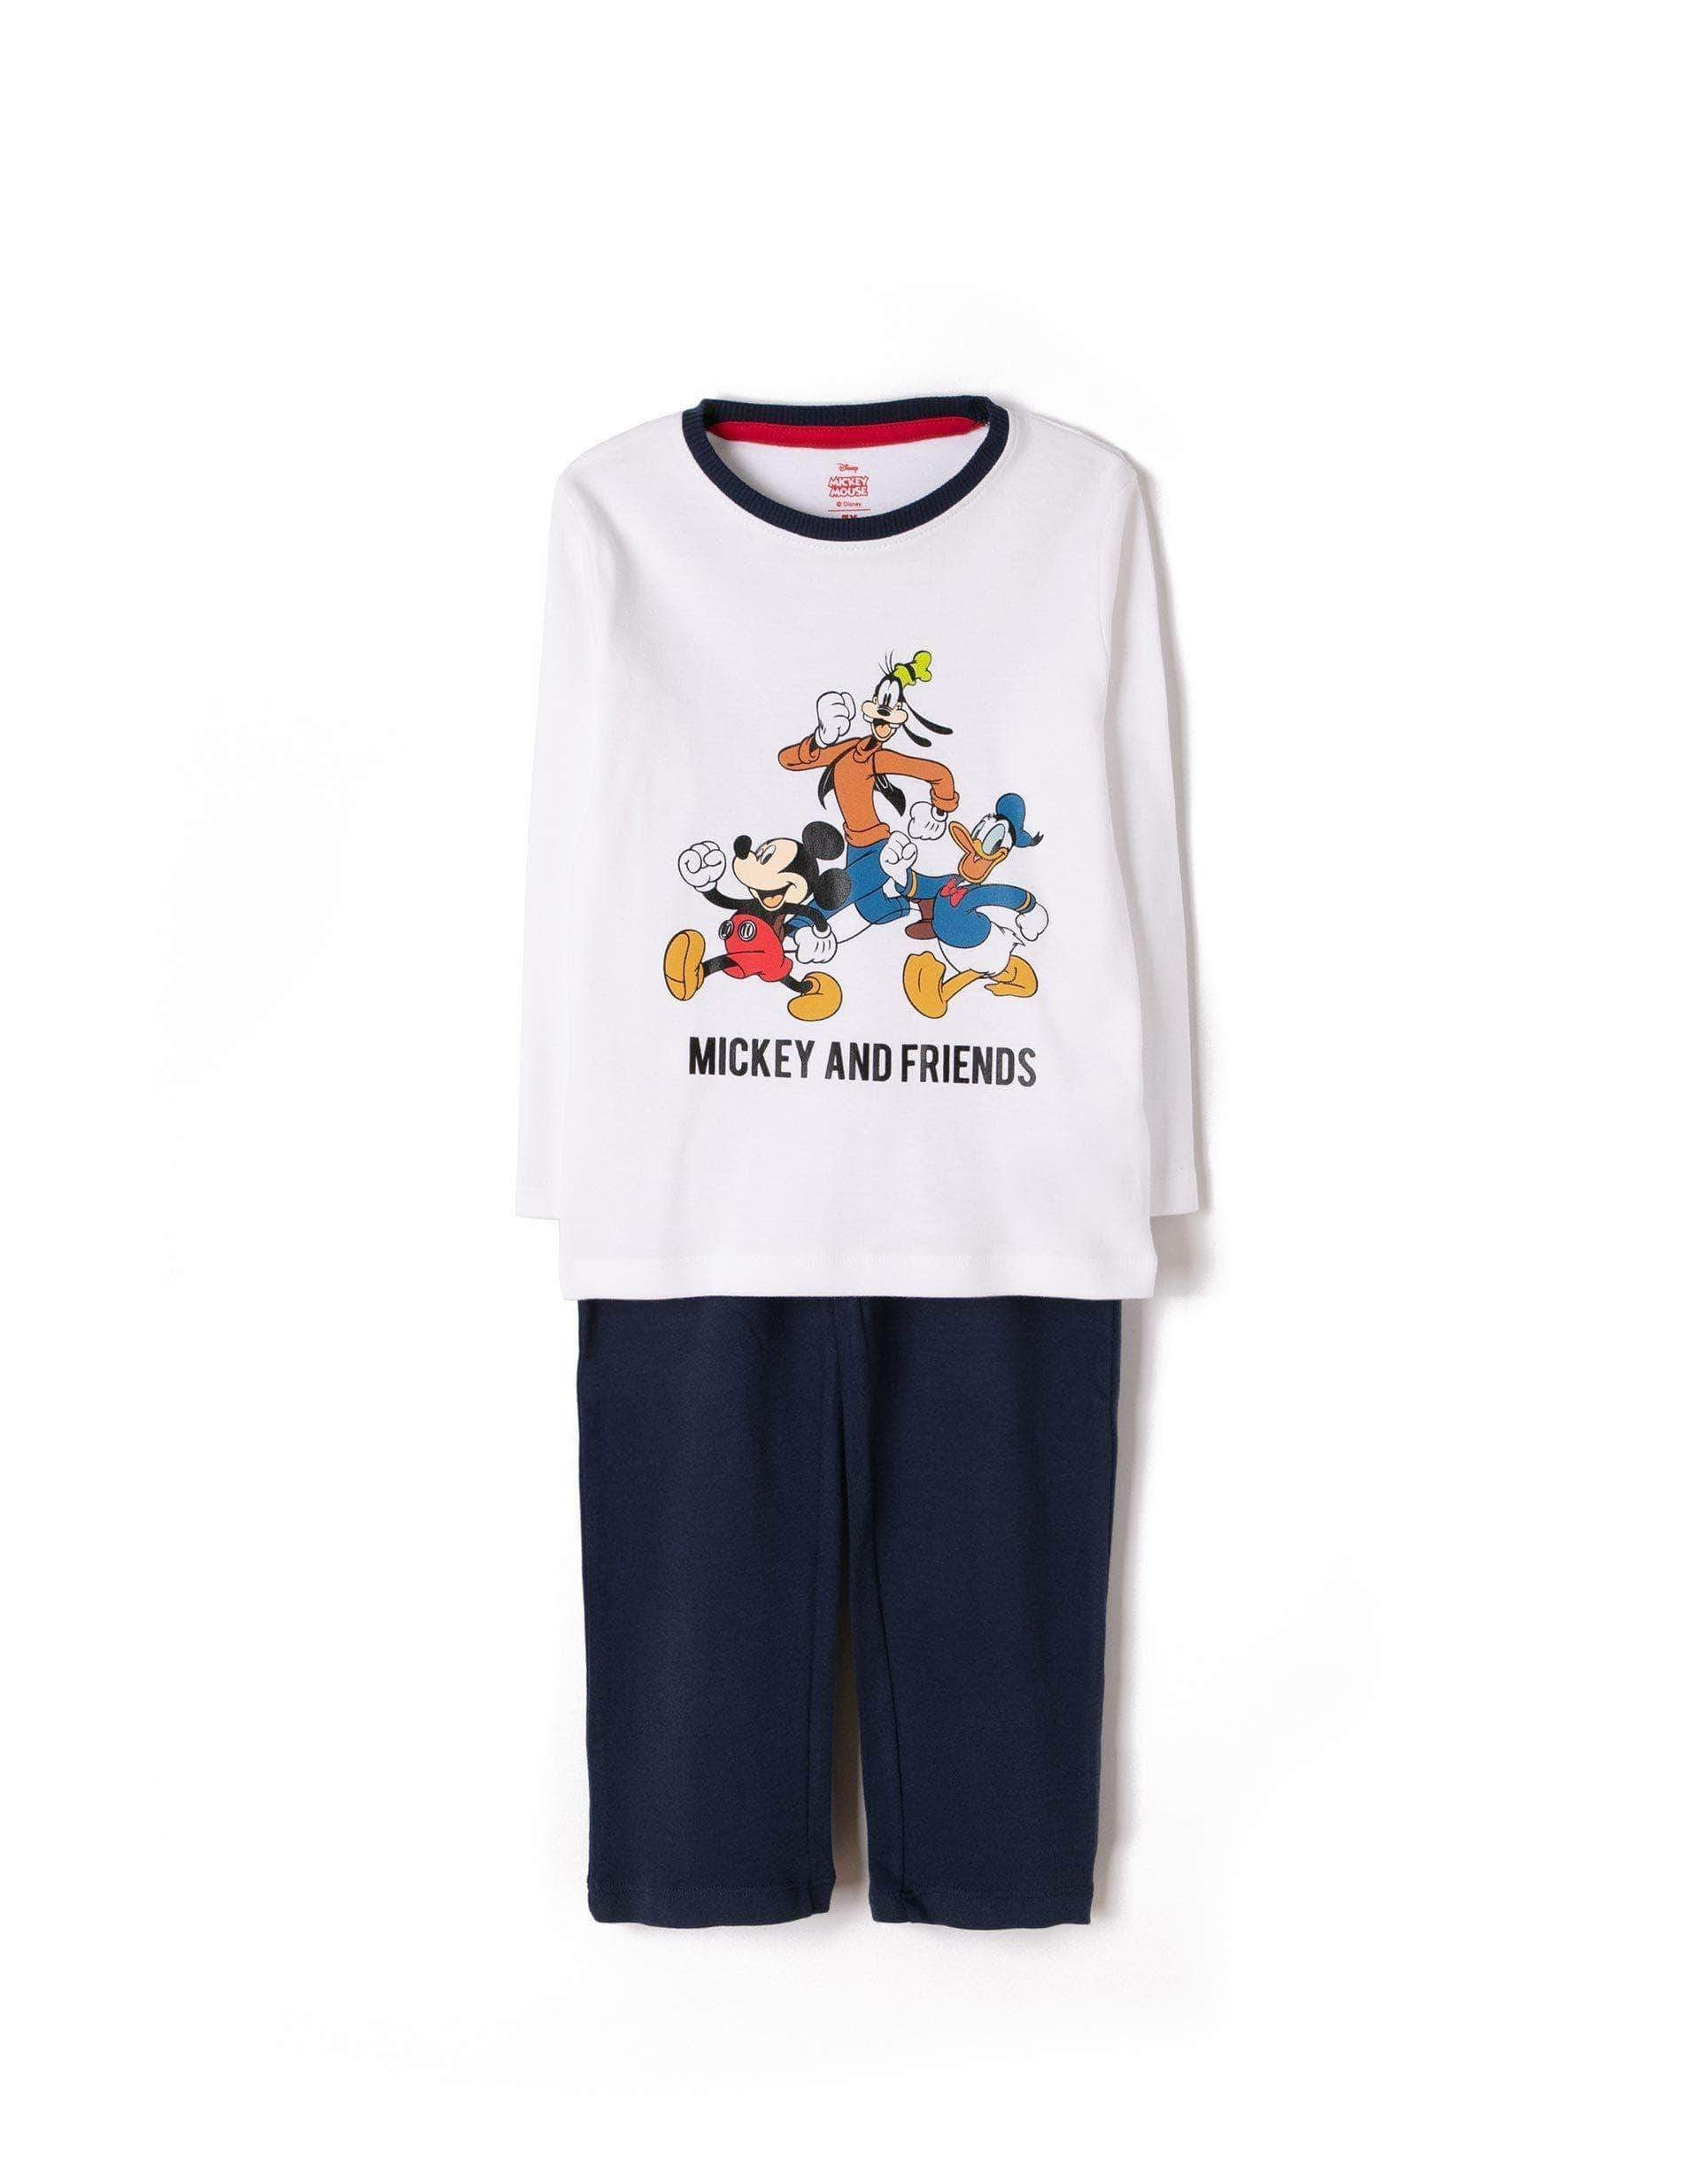 Amazon ZIPPY Pijama Mickey and Friends Conjuntos, Multicolor (Mixed 1158), 5 años (Tamaño del Fabricante:4/5) para Niños